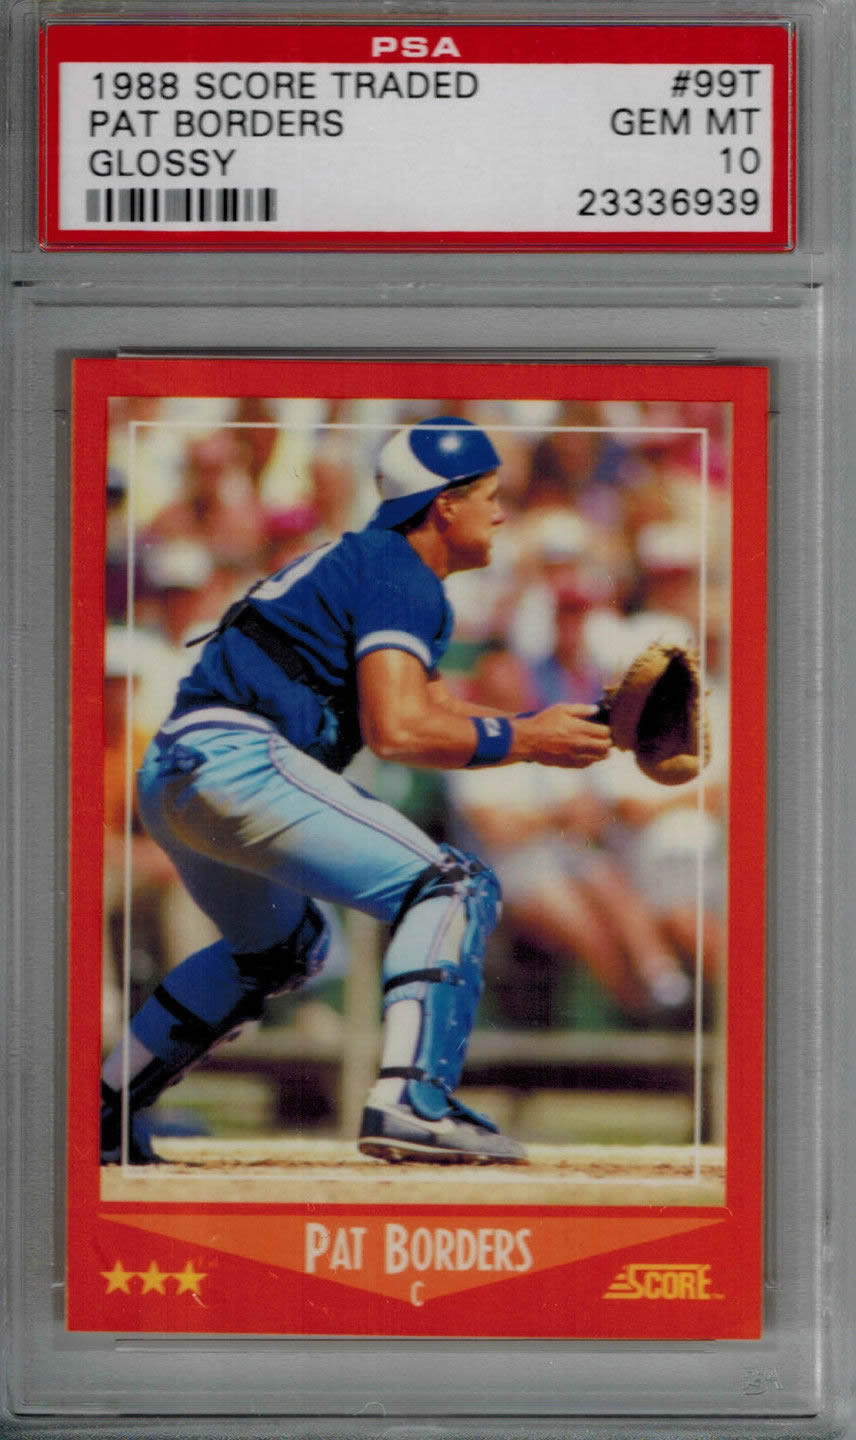 1988 Score Traded Glossy #99T Pat Borders RC Blue Jays PSA 10